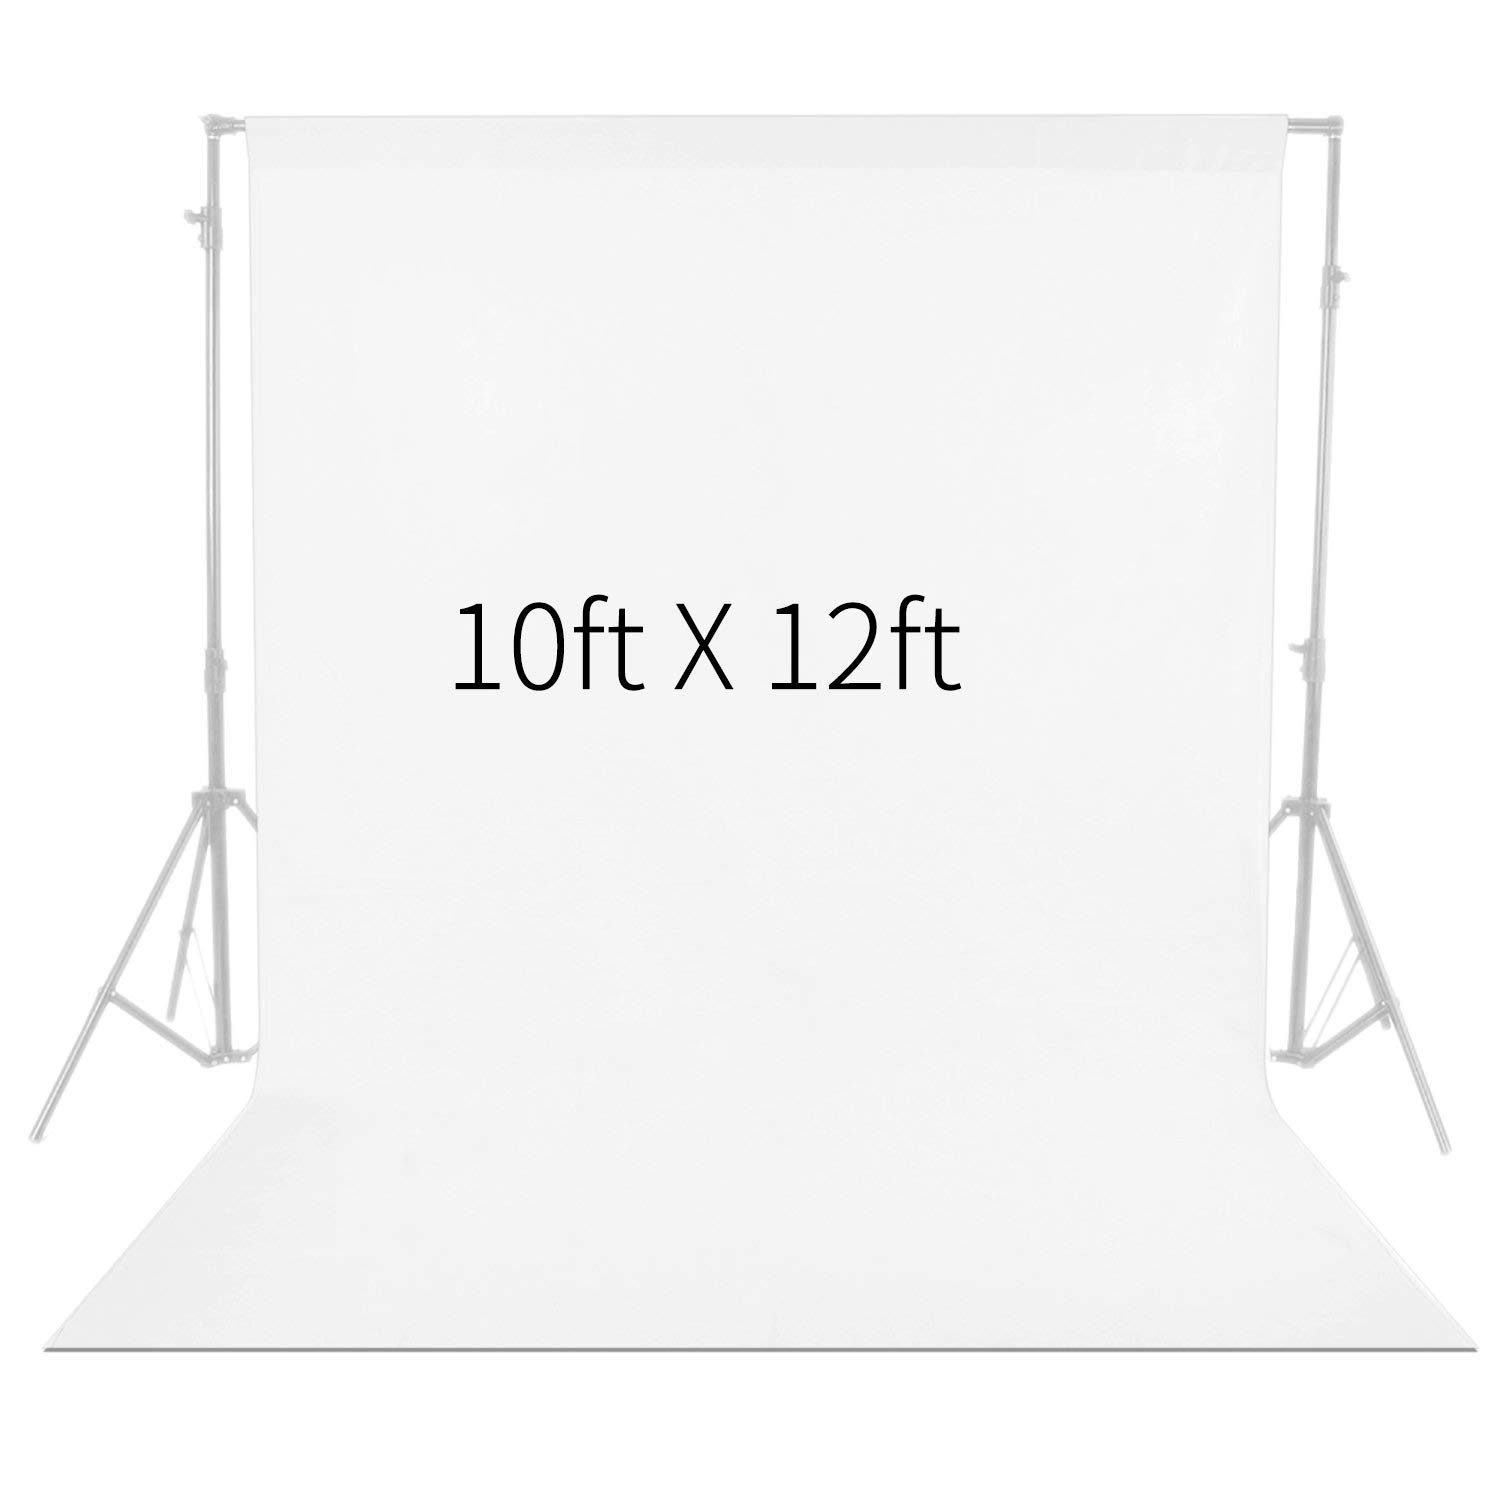 Neewer 10 x 12FT / 3 x 3.6M PRO Photo Studio Fabric Collapsible Backdrop Background for Photography,Video and Televison (Background ONLY) - White by Neewer